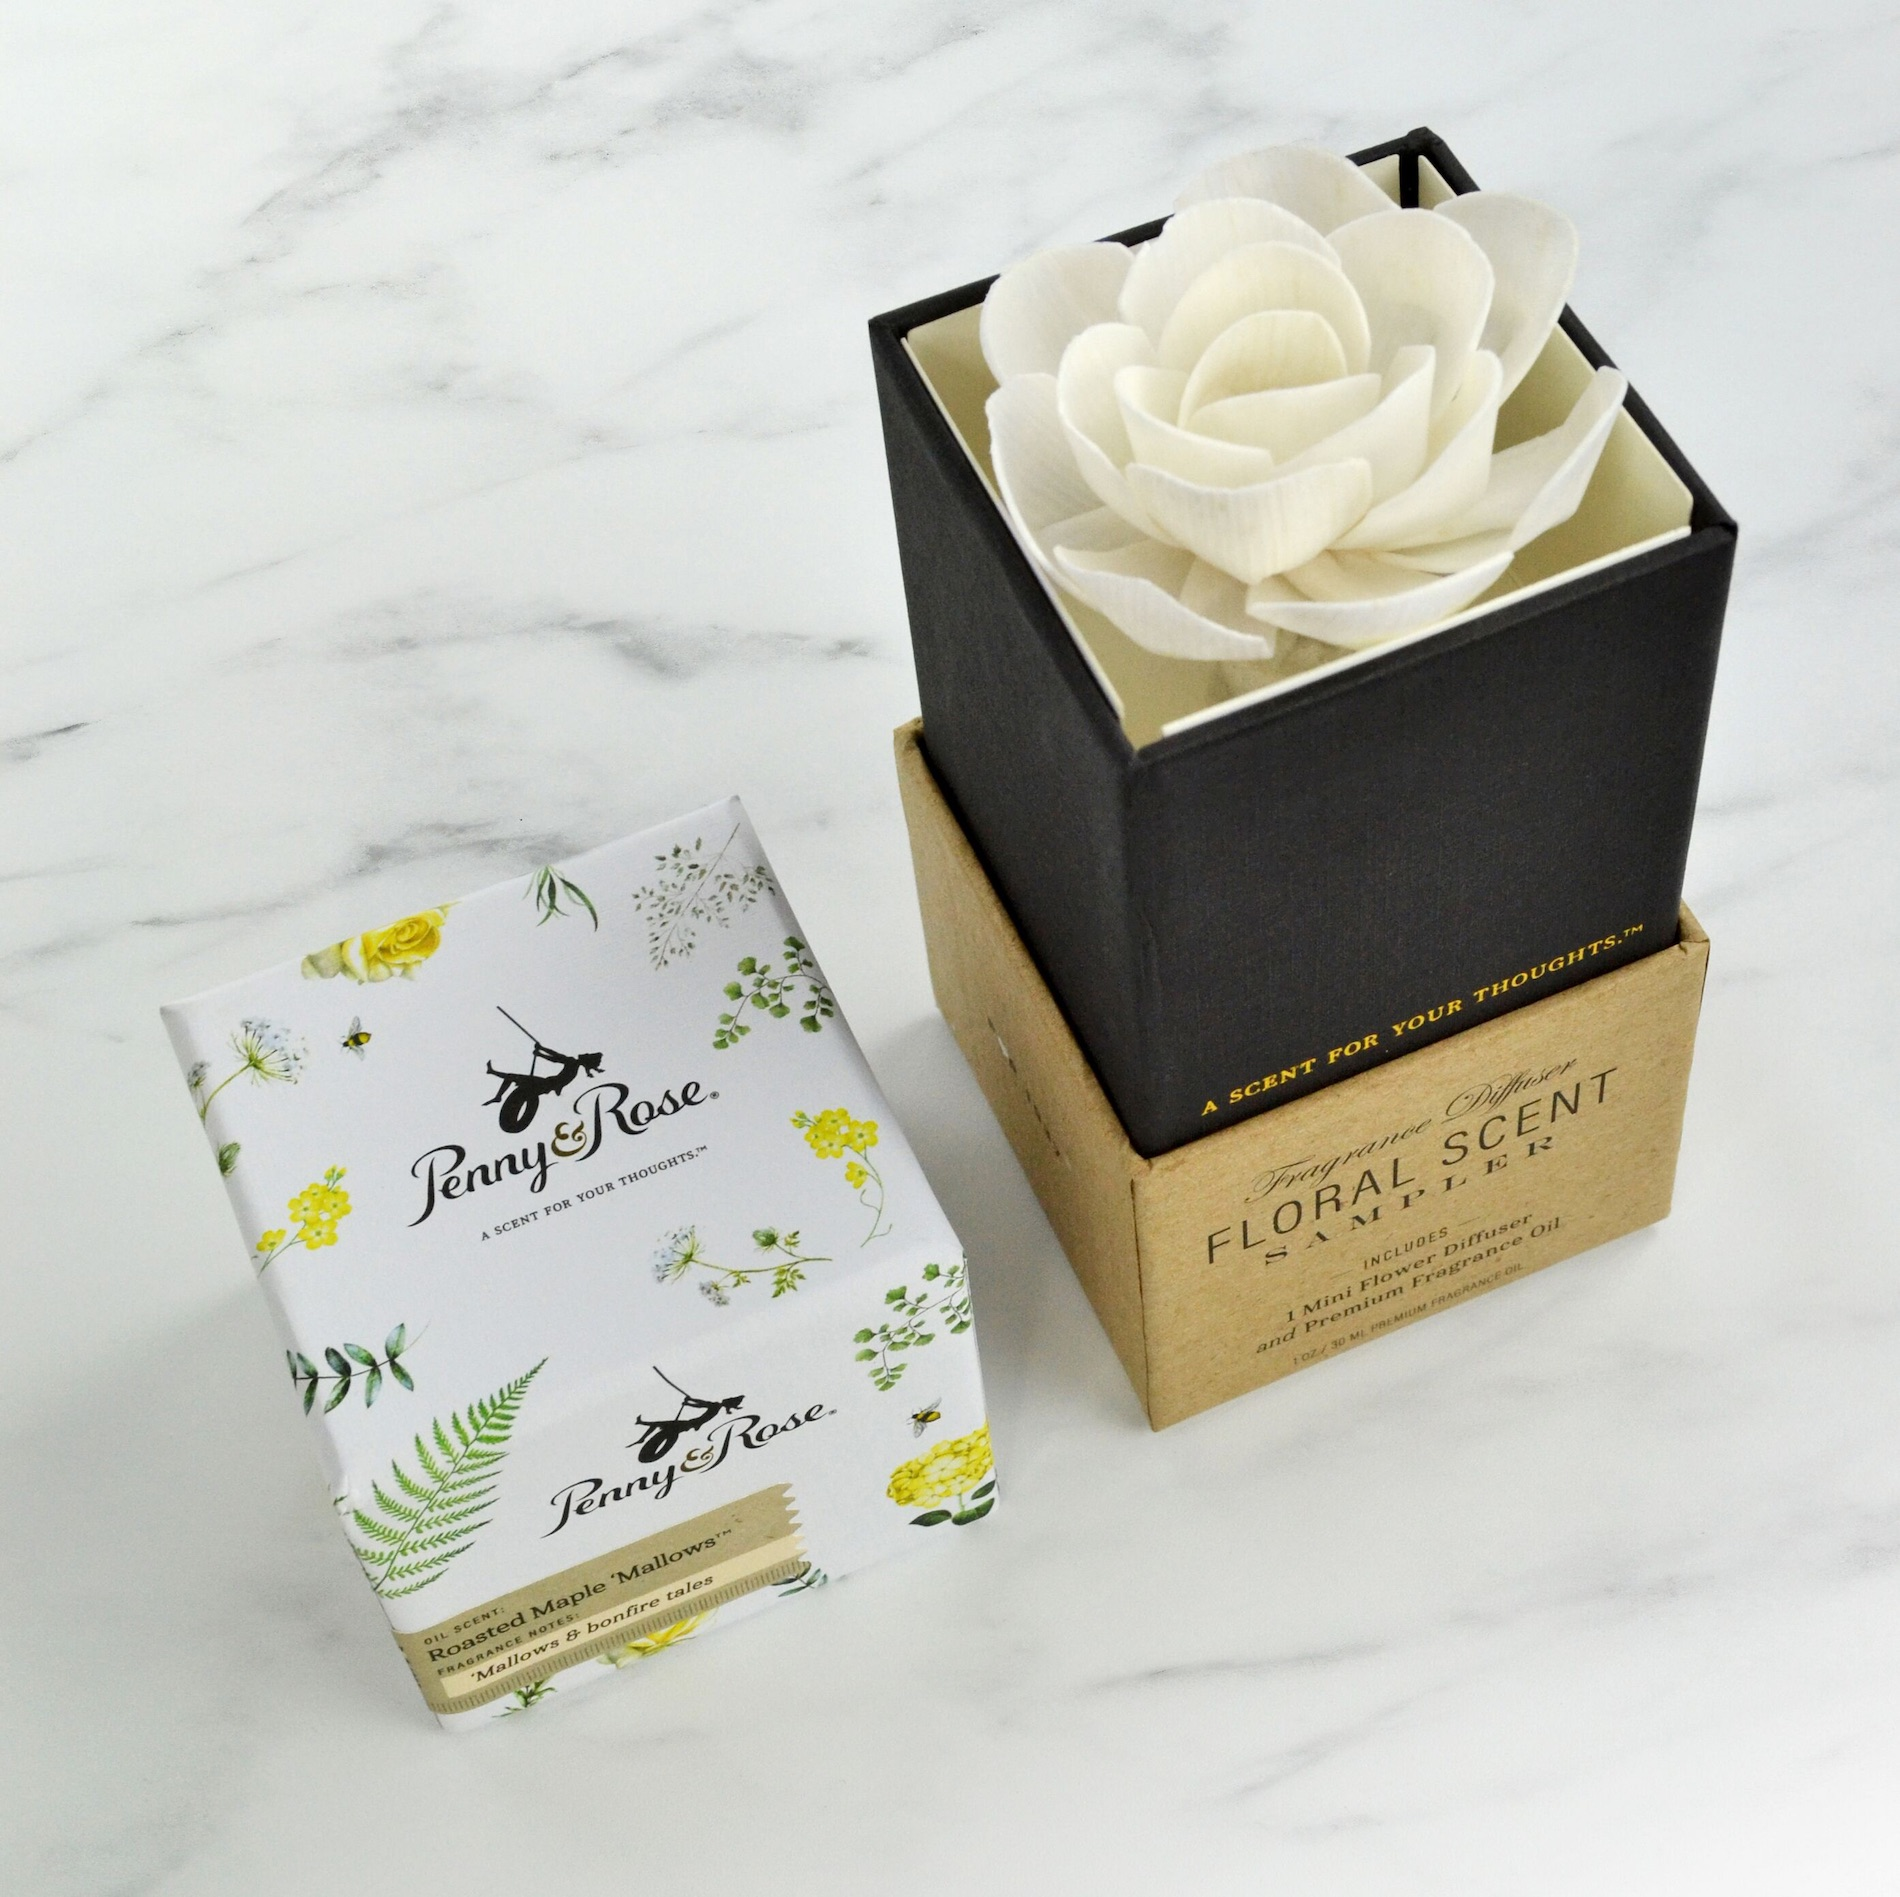 Penny & Rose branding and packaging